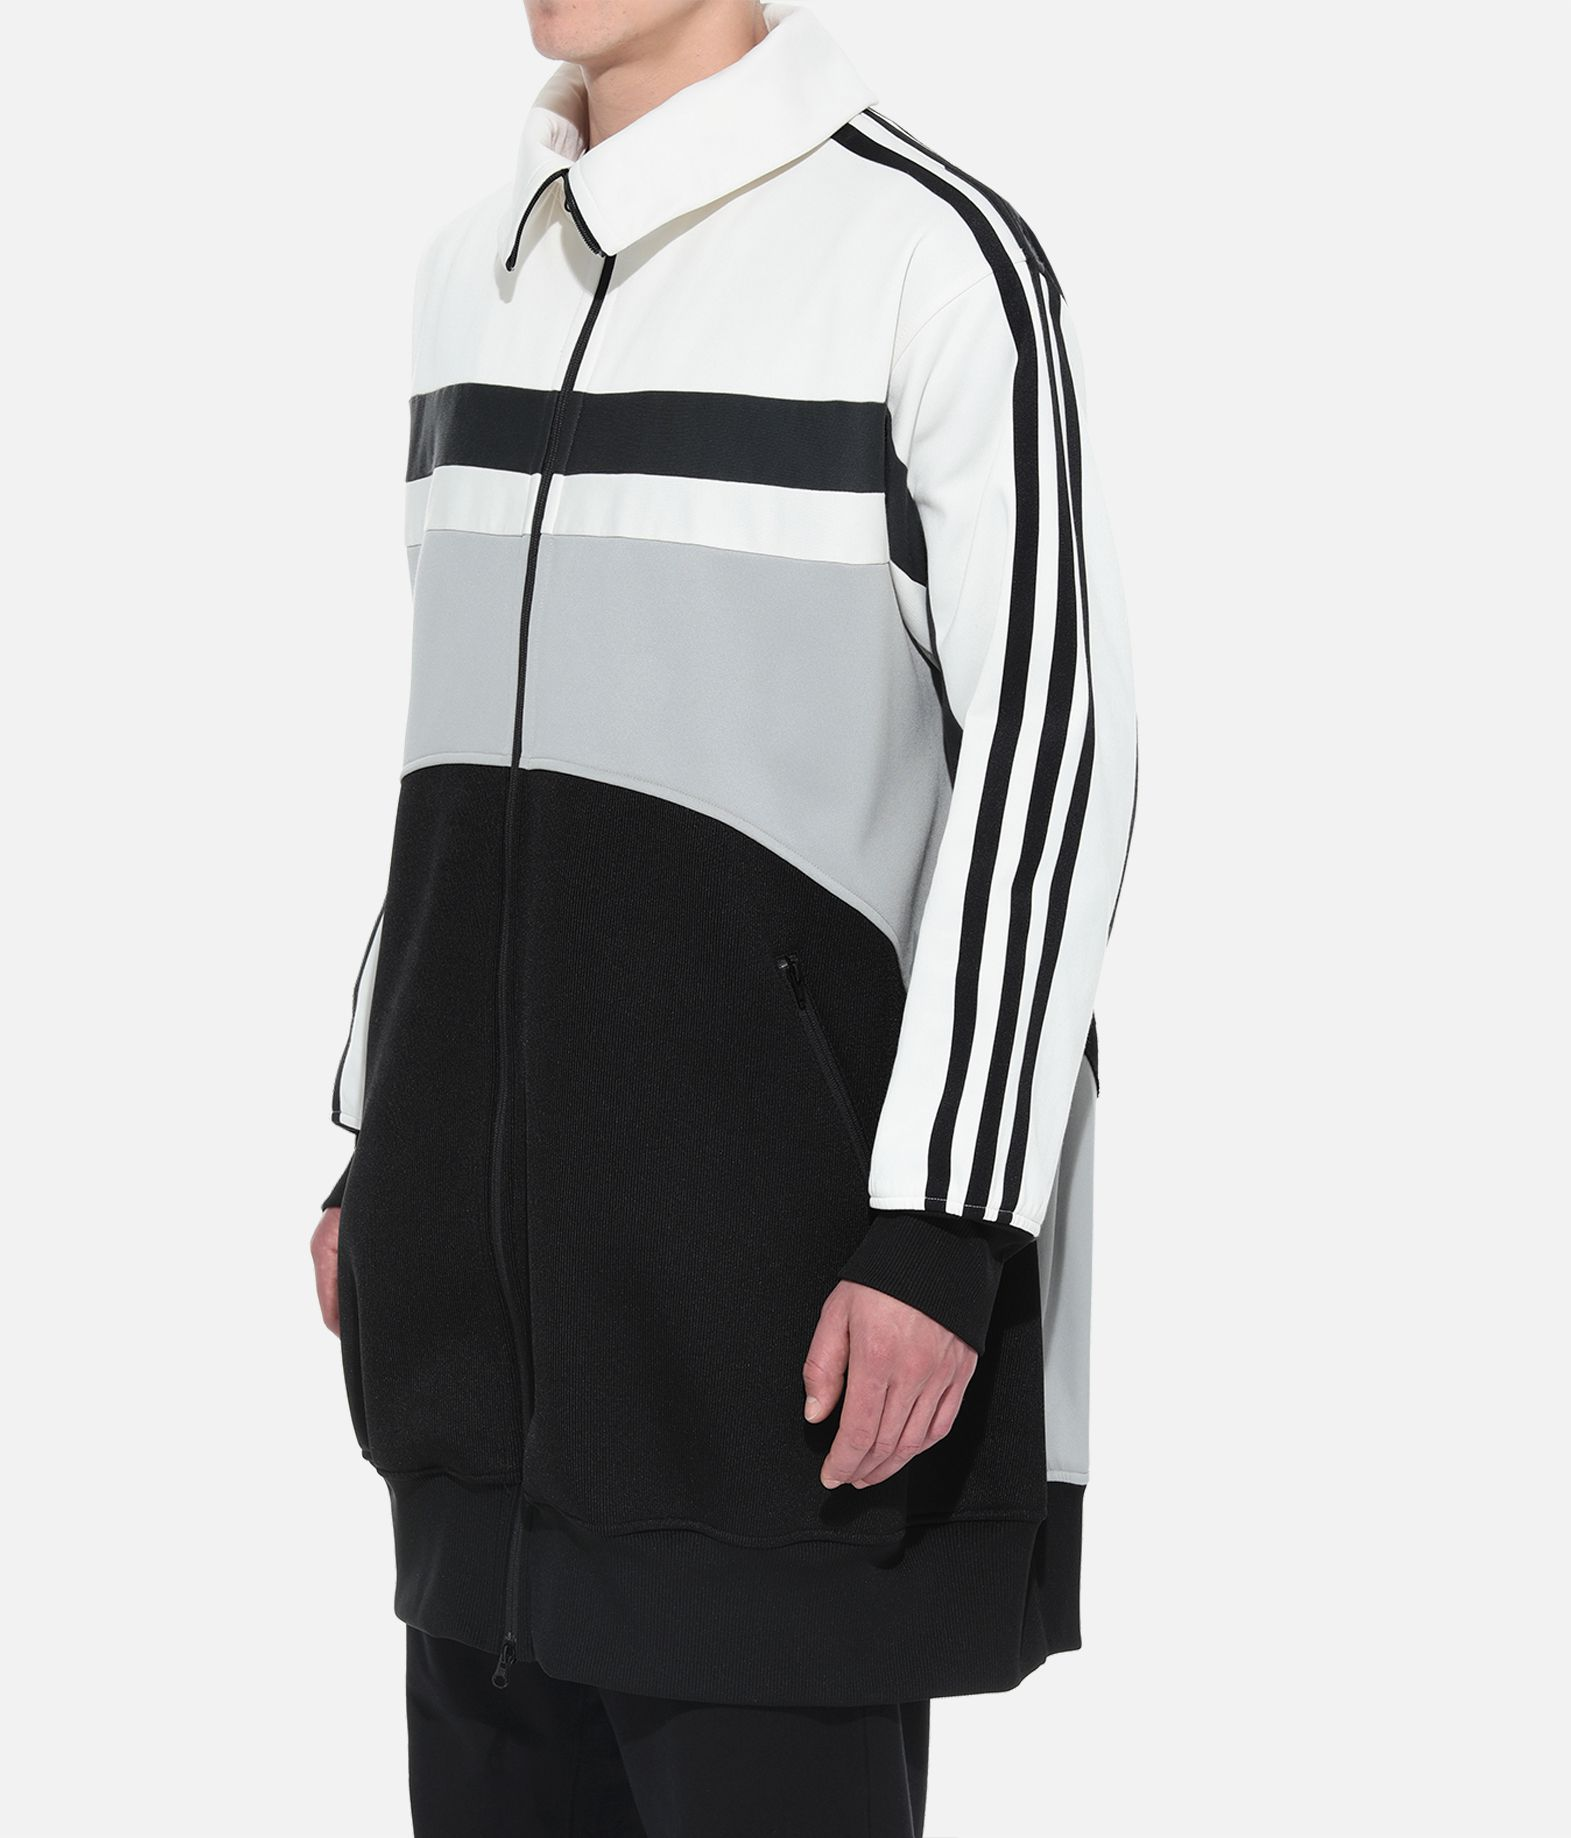 Y-3 Y-3 OVERSIZED GRAPHIC TRACK TOP Track top Herr e